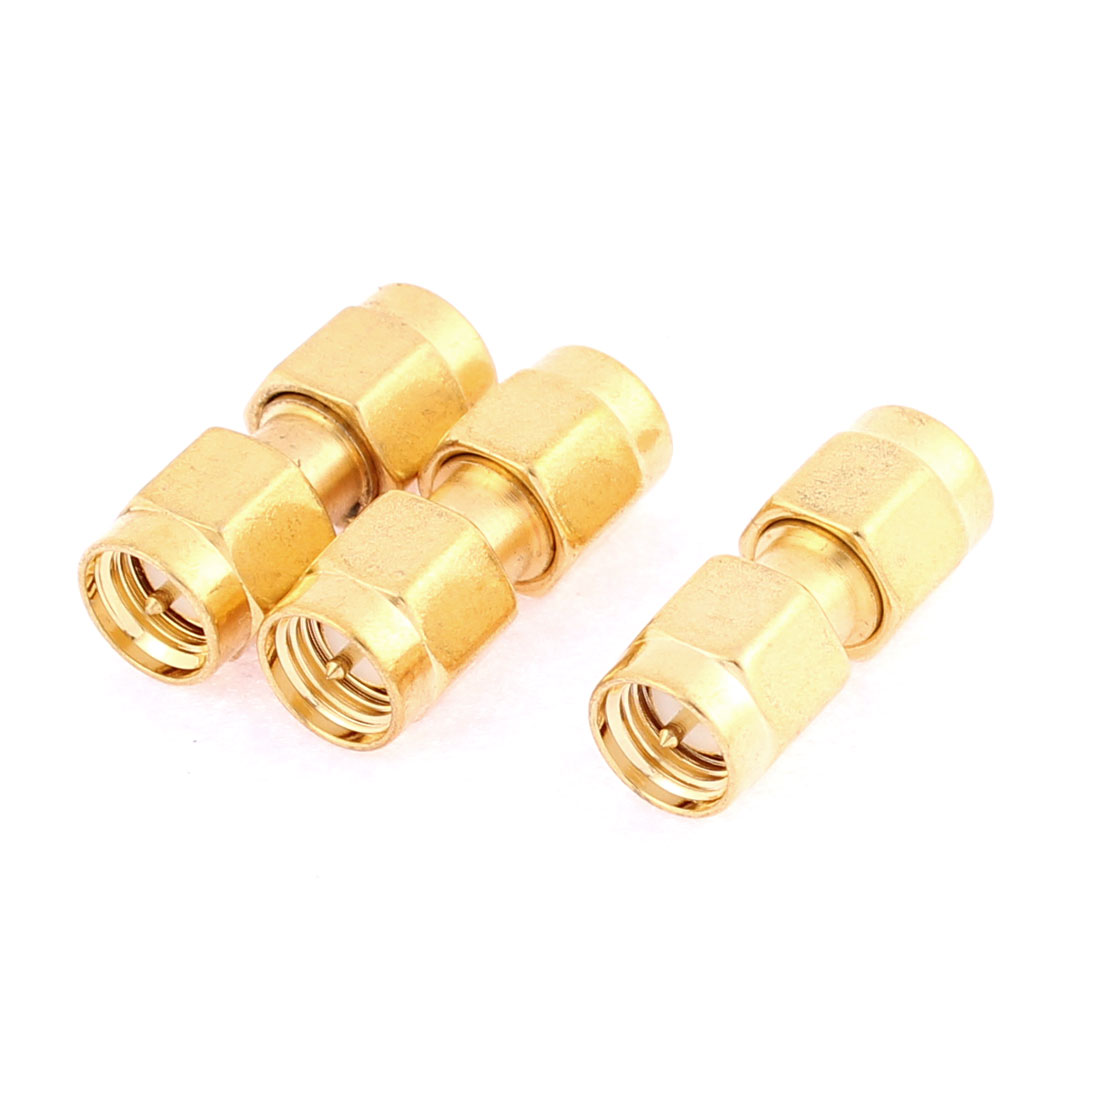 SMA Male to Male RF Coaxial Adapter Stright Connector Gold Tone 3 Pcs